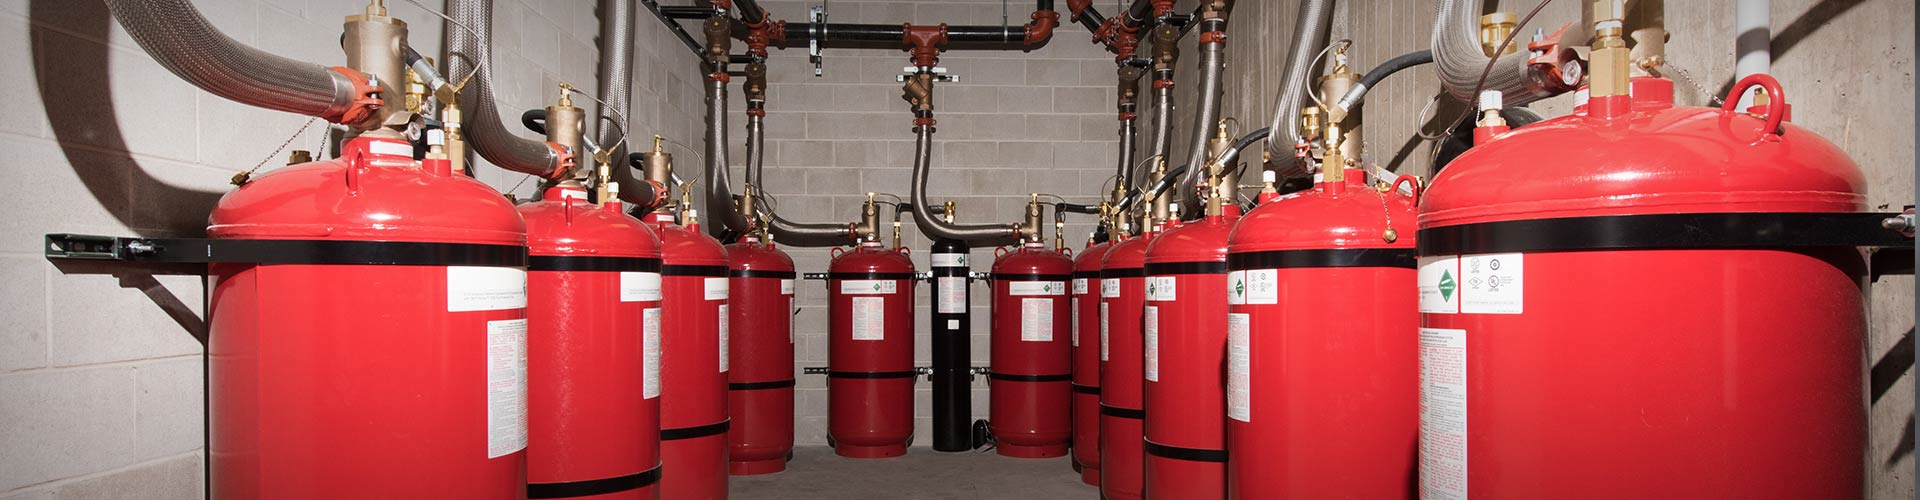 Novec 1230 Fire Suppression Systems American Fire Technologies